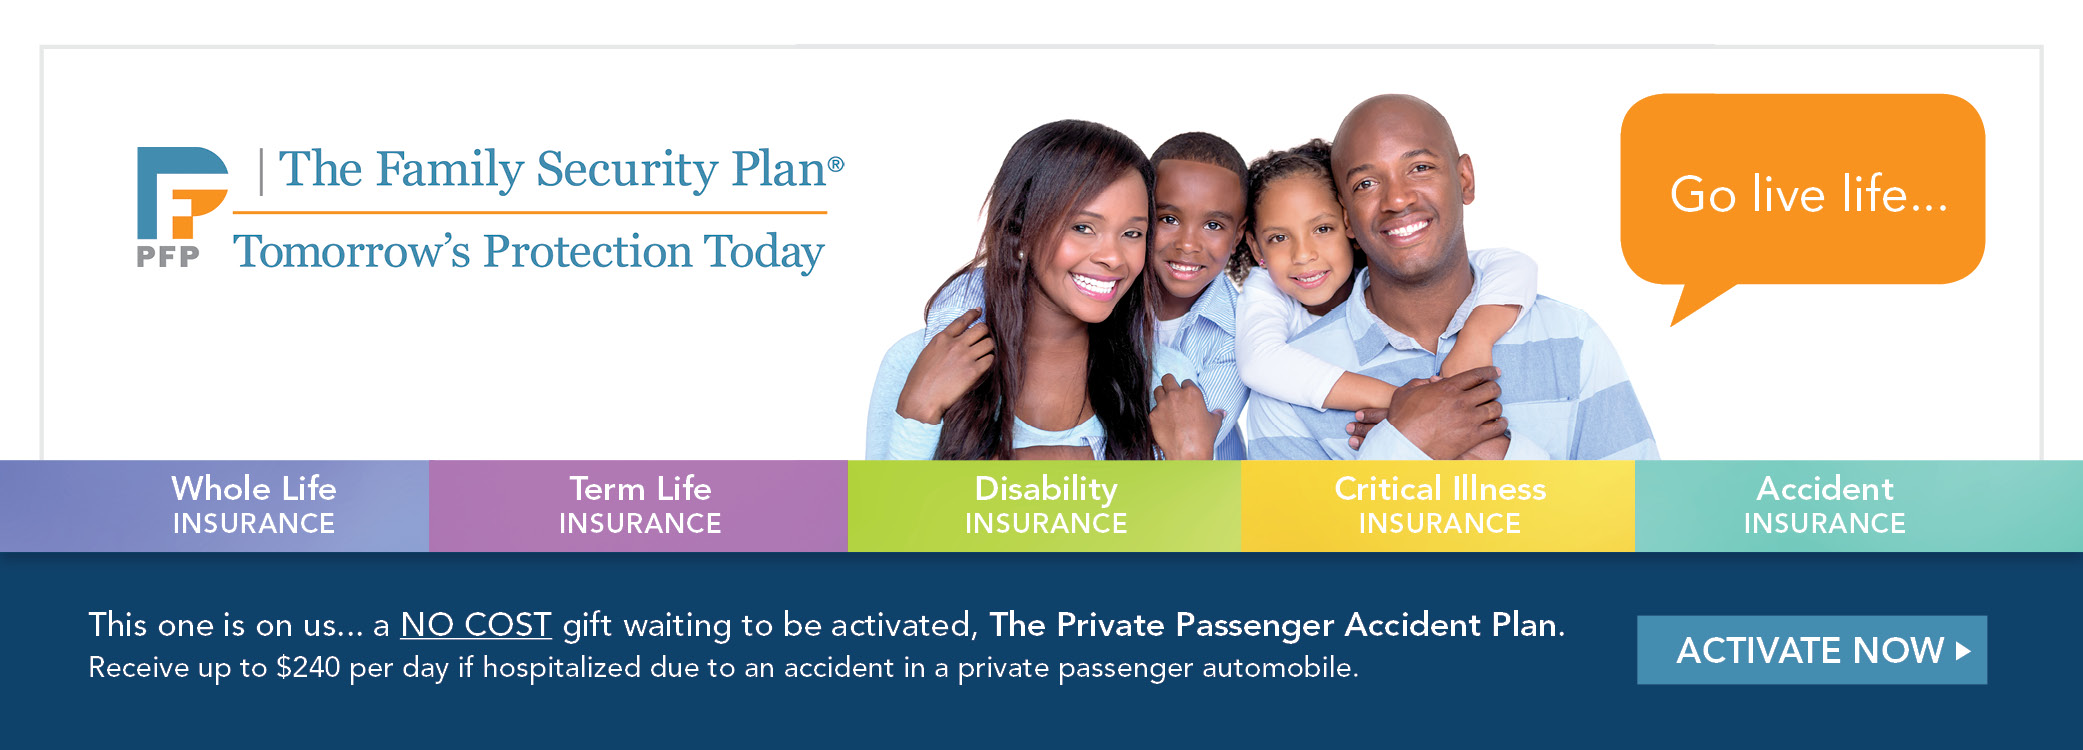 Learn more about The Family Security Plan® Insurance. Call 1-855-784-2875